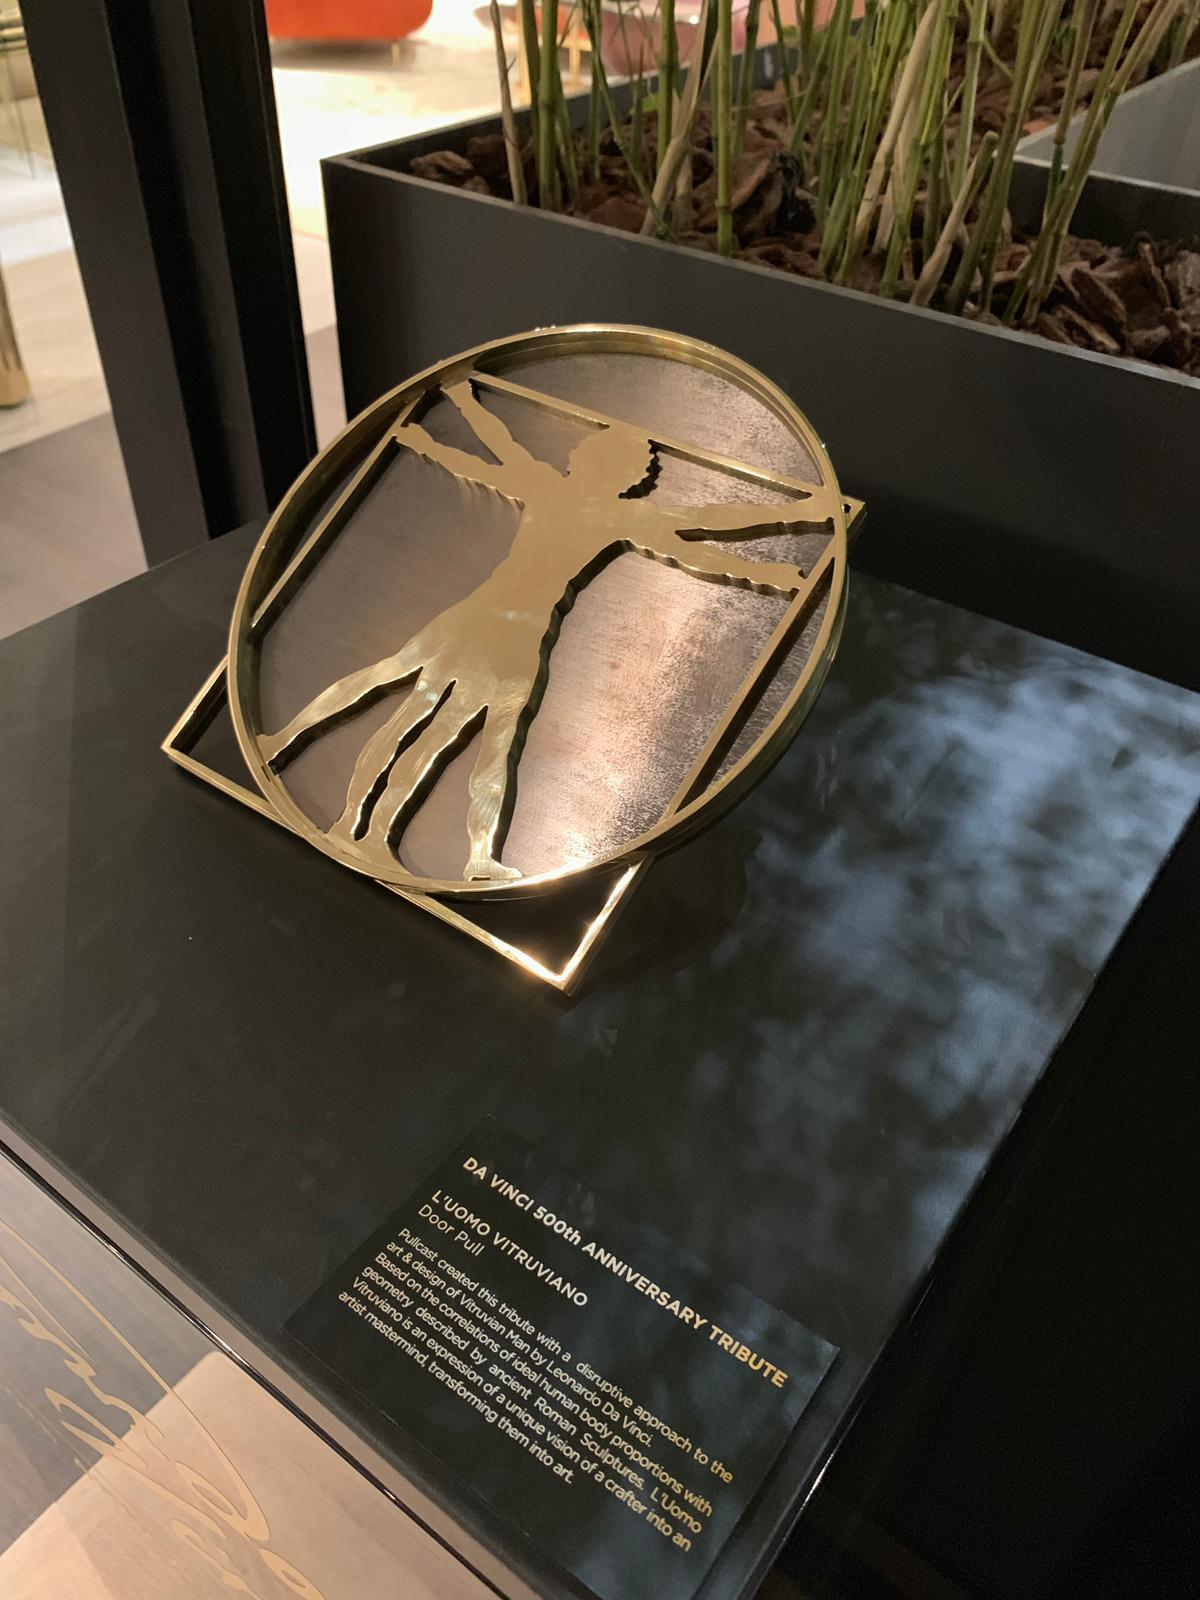 tribute to leonardo da vinci Tribute to Leonardo Da Vinci – Auction during Isaloni 2019 WhatsApp Image 2019 04 08 at 19